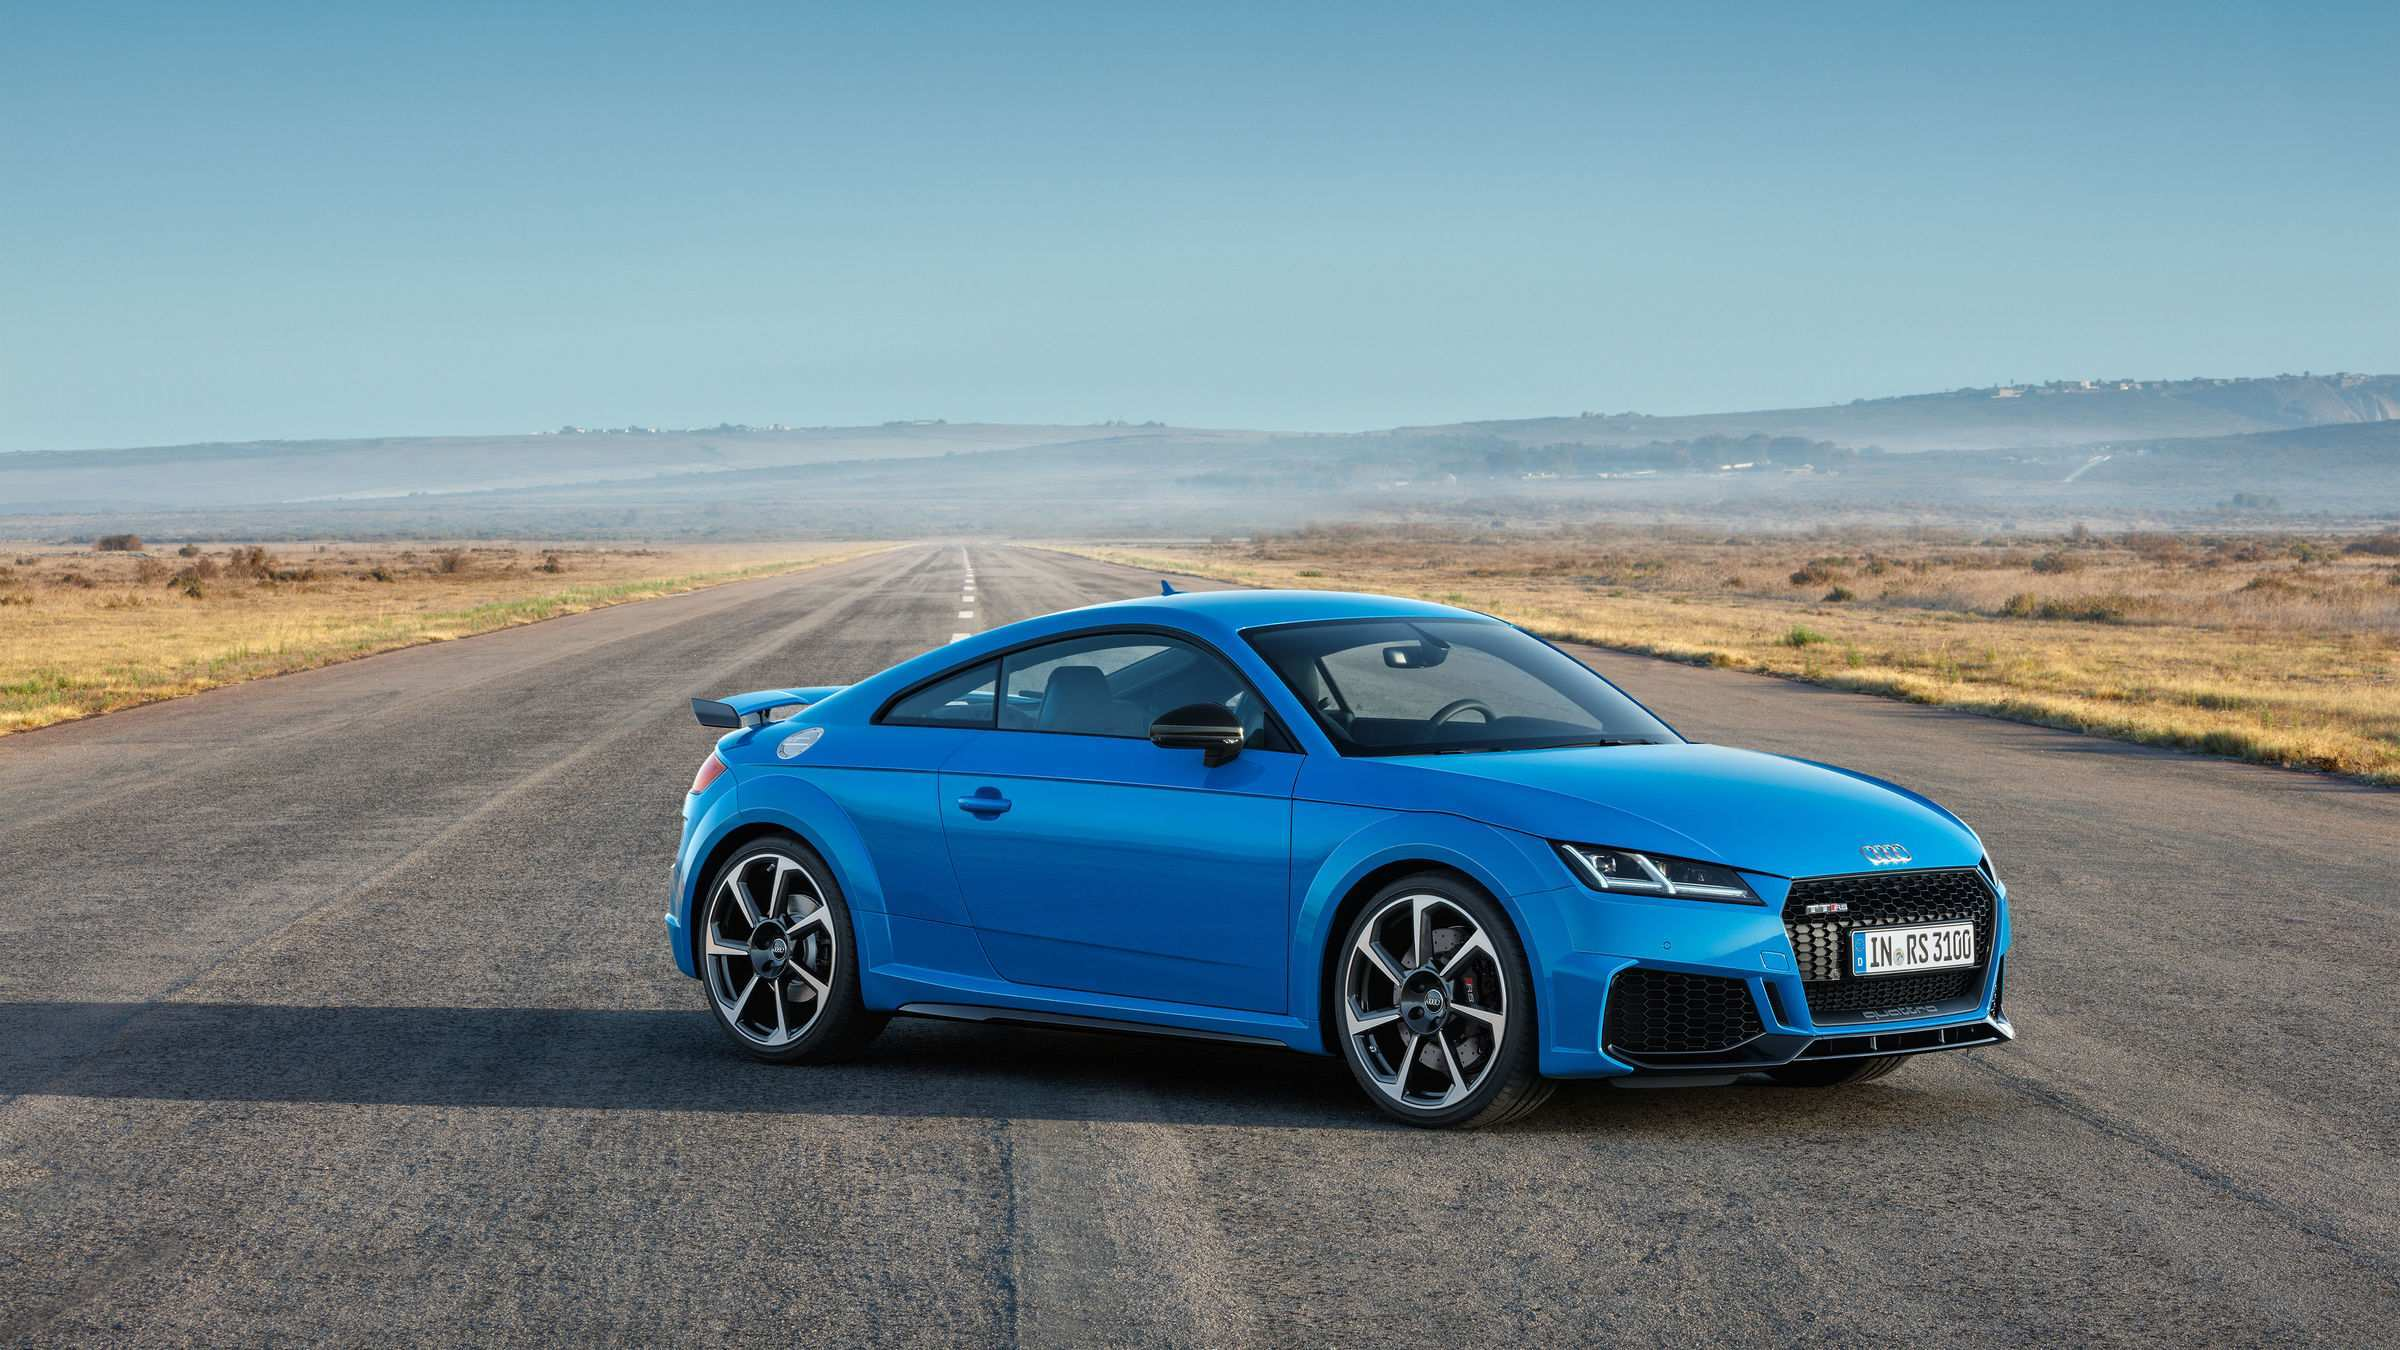 63 The 2019 Audi Tt Rs Photos